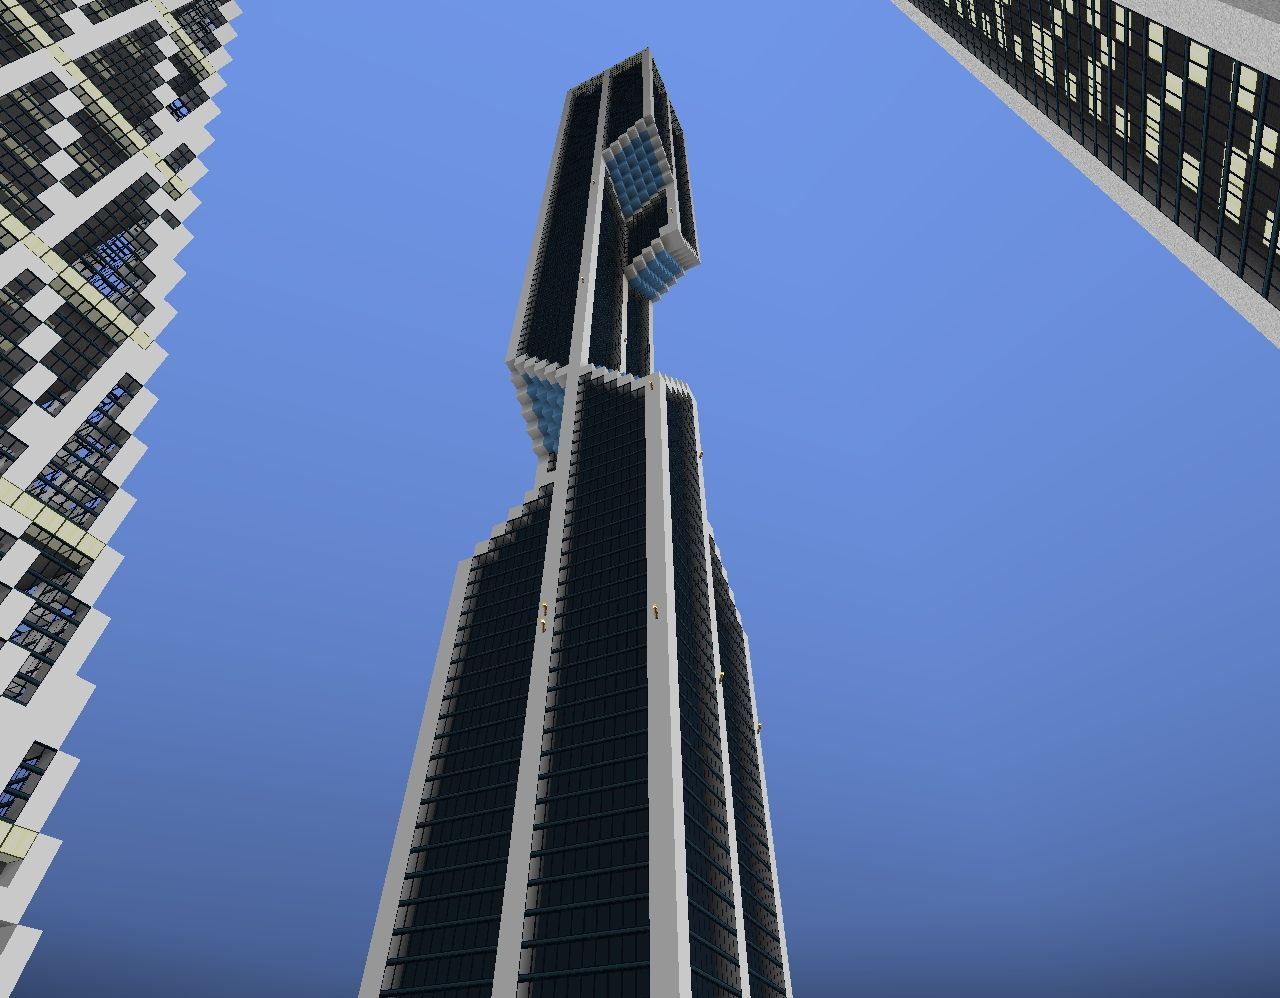 Architecture: Futurism Architecture (inspired By Norman Foster